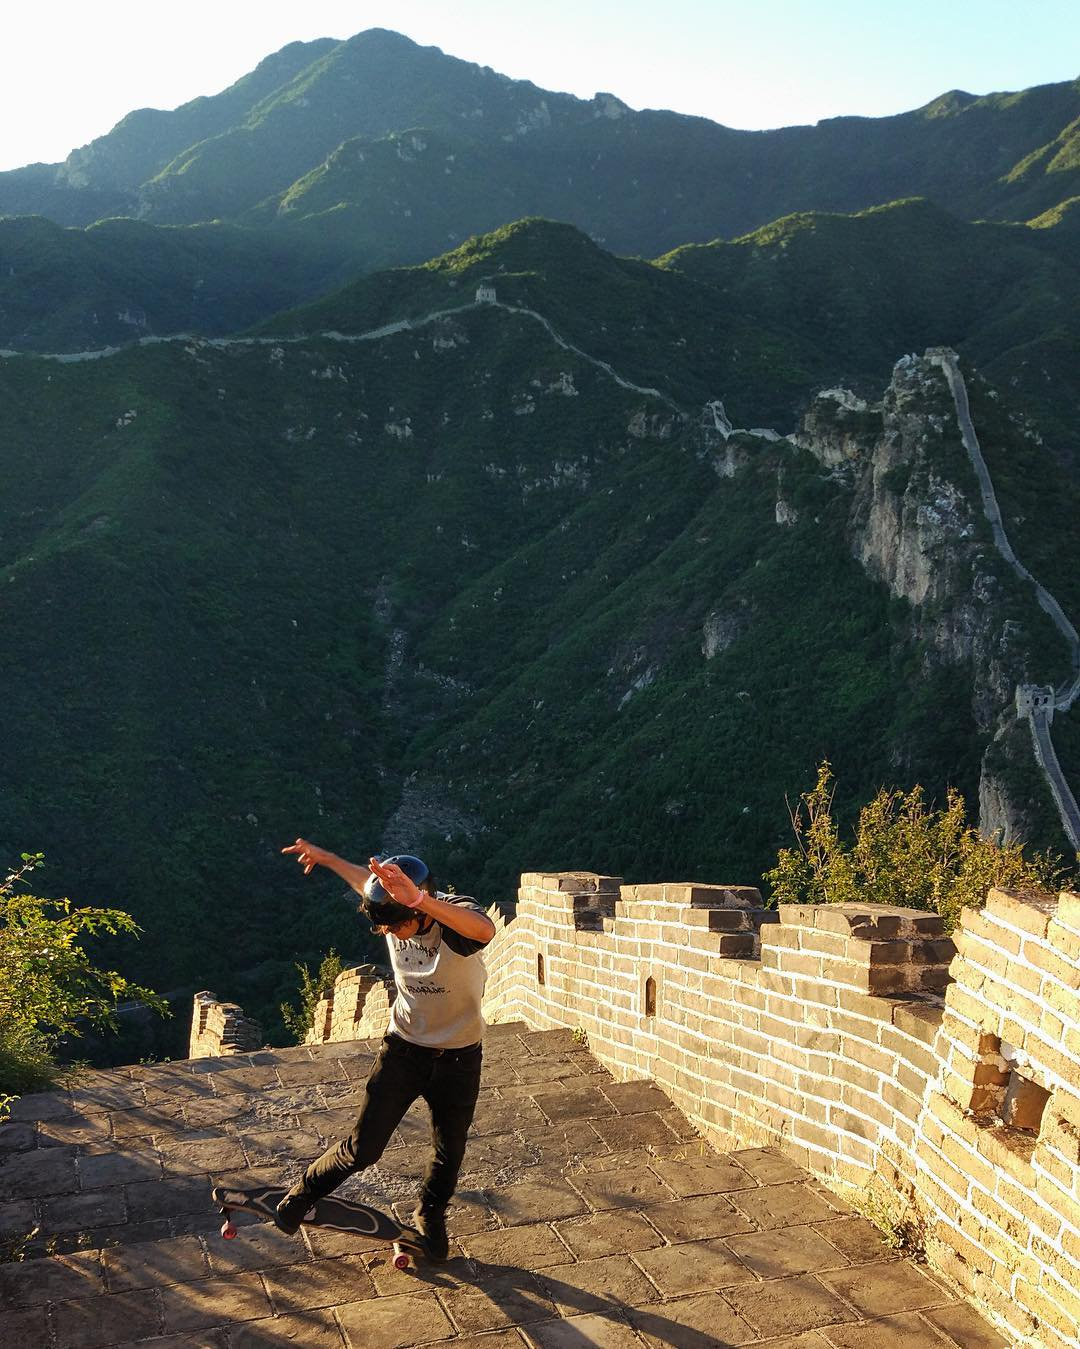 The Paris Truck Co. crew paid a very special visit to a remote, rural, overgrown section of the incredible #GreatWallofChina, roughly two hours North of #Beijing. @Ari_Shark took the opportunity to fire out a G-Turn Fakie Shuv-It combo at sunset to...